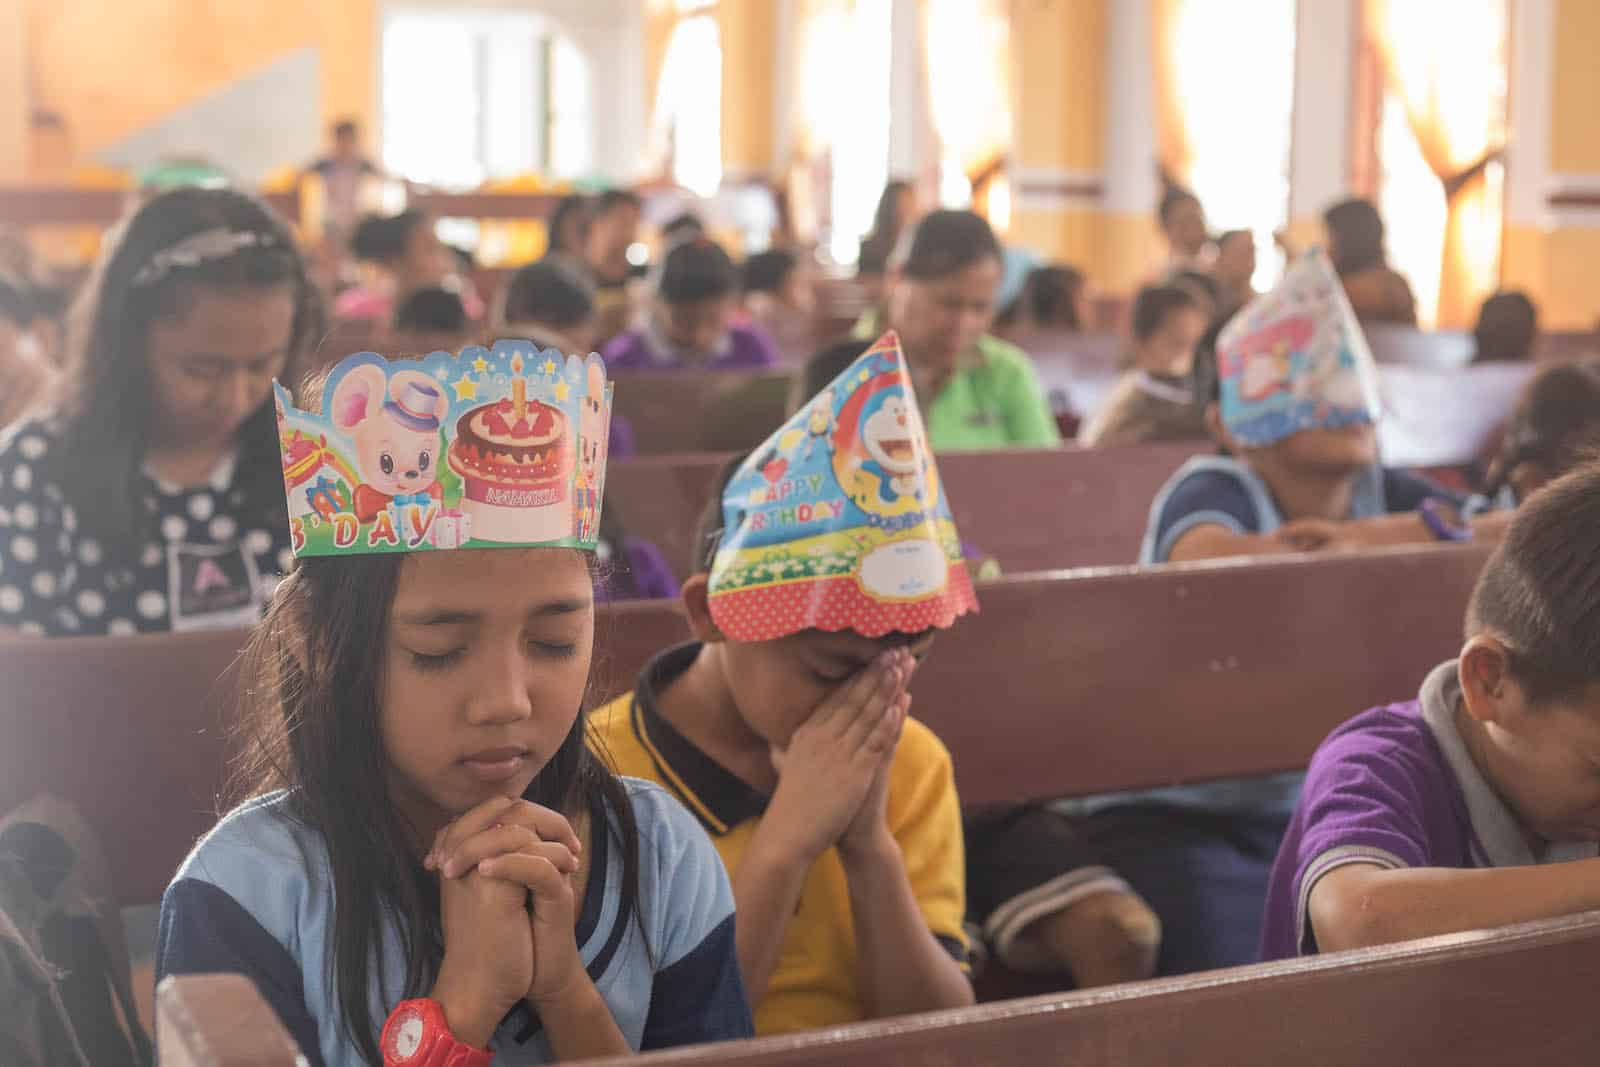 Two children wearing birthday party hats pray, sitting in pews in a church.